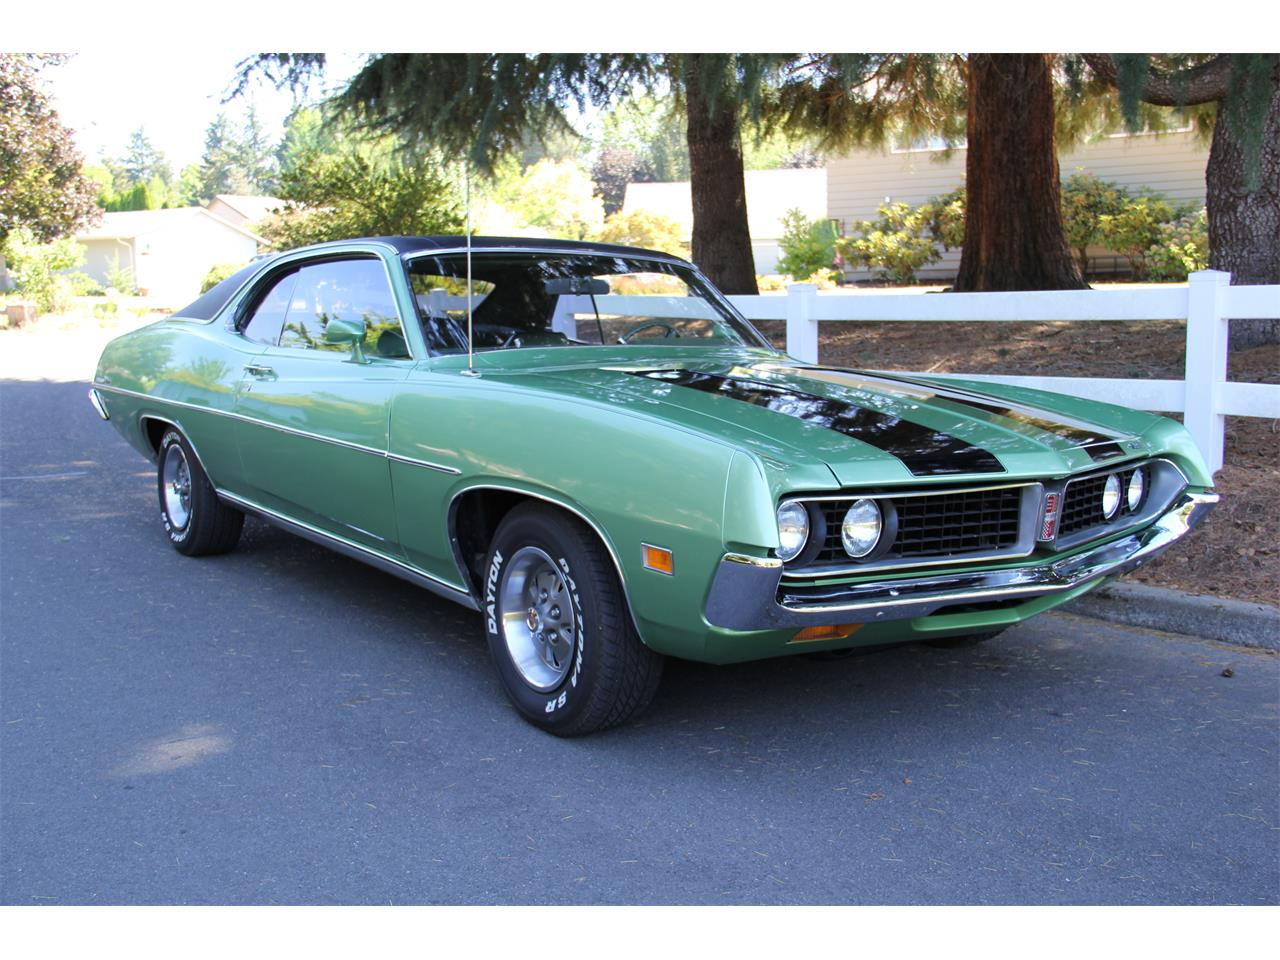 Large picture of 71 torino 500 special edition 41000 miles video